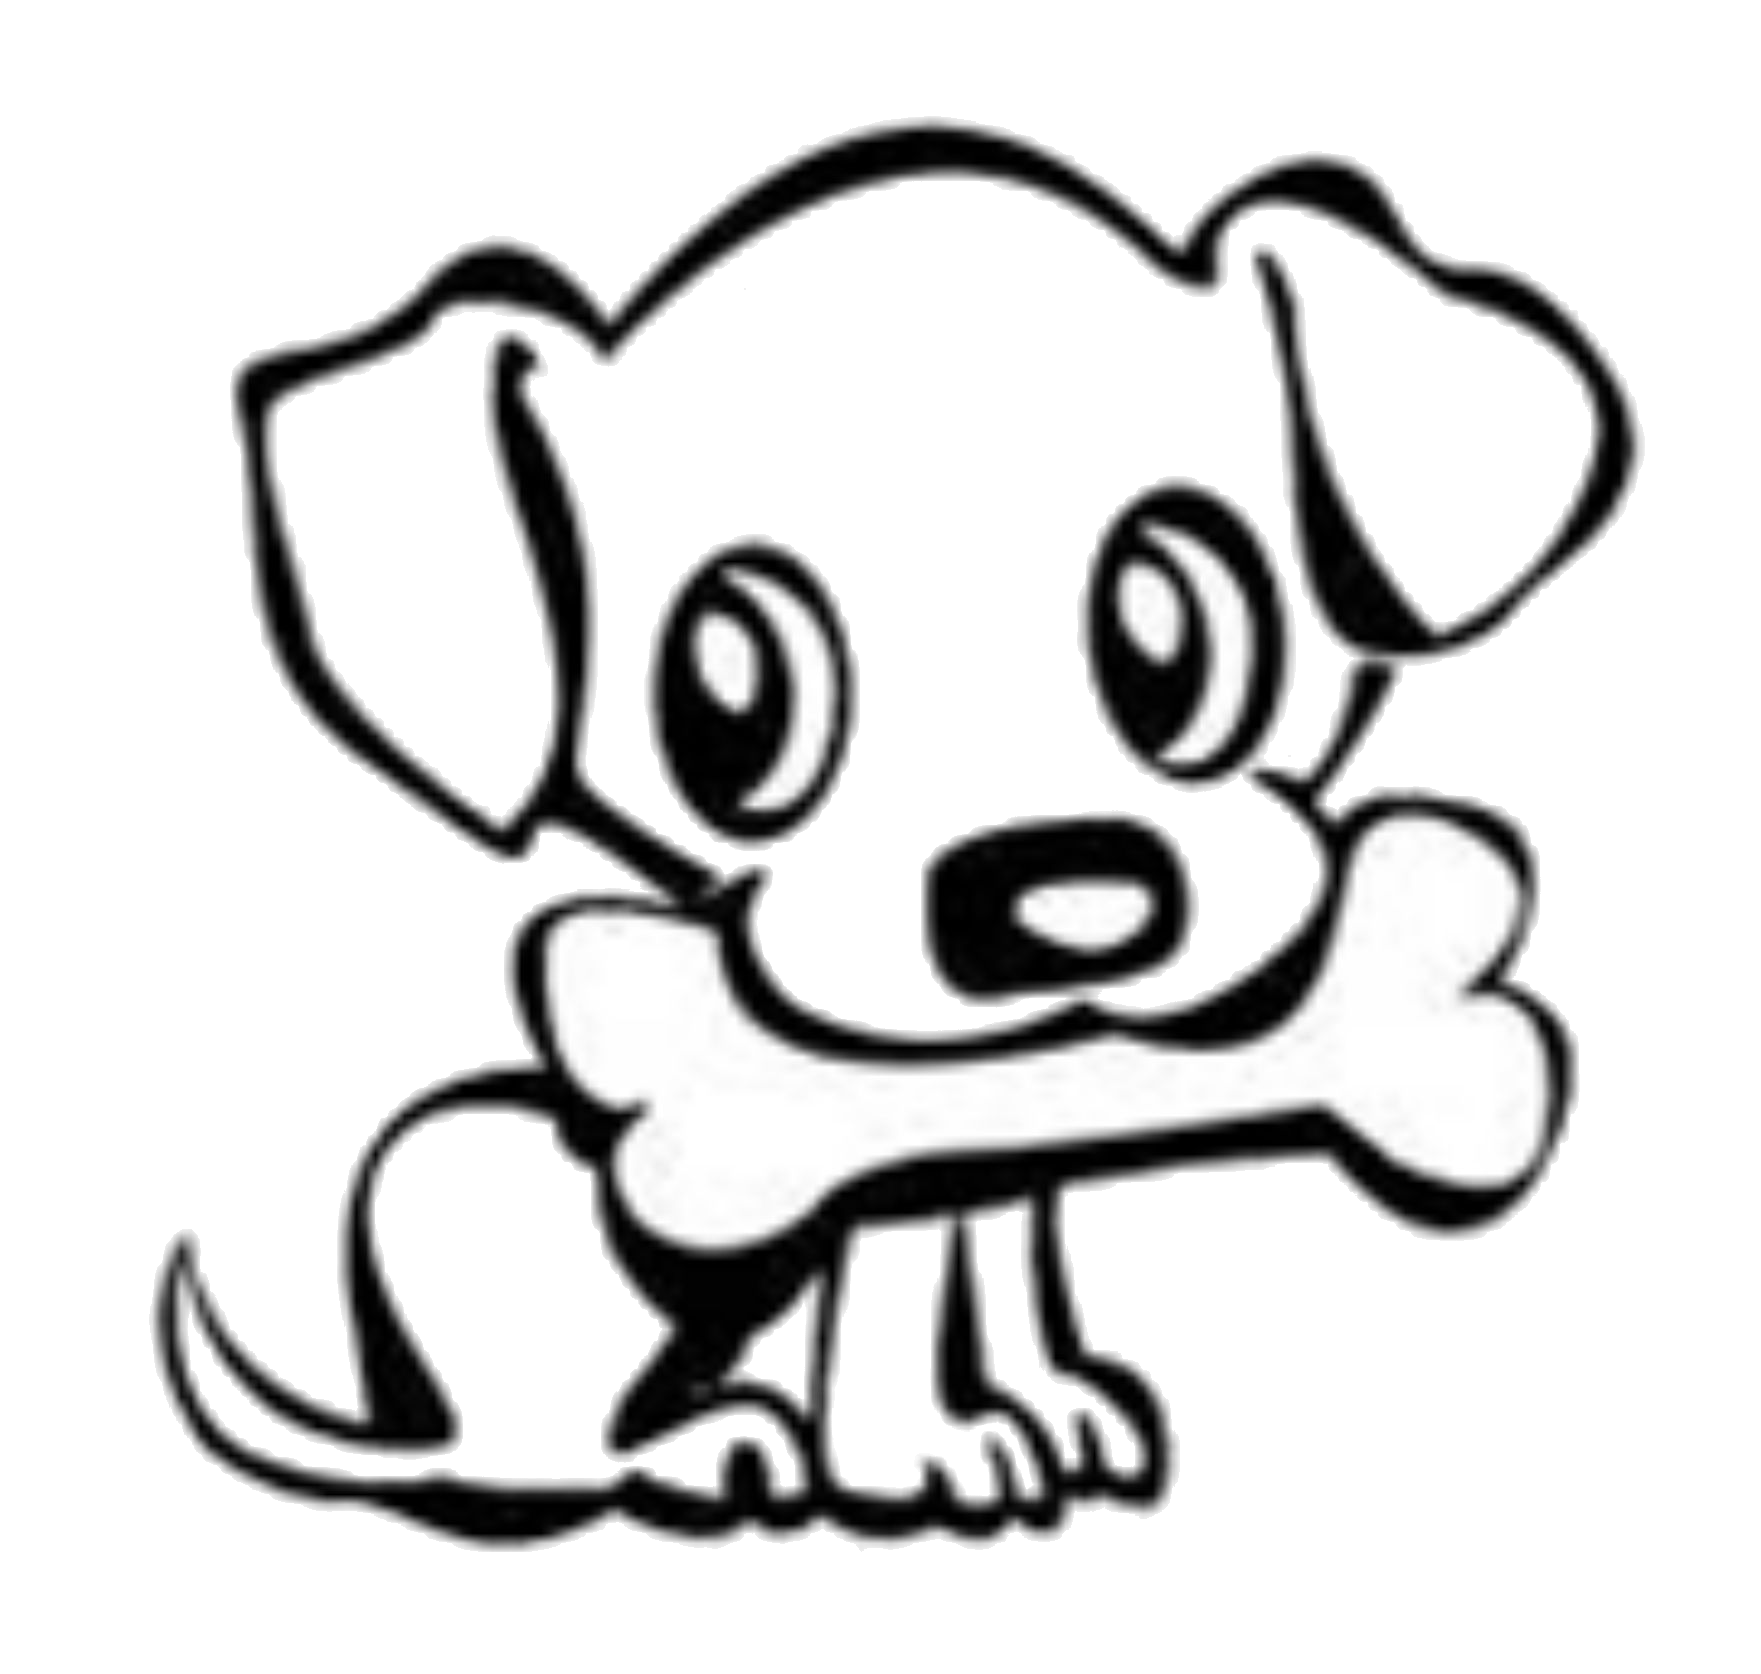 Dog bowl clipart black and white. Bone drawings group parkway